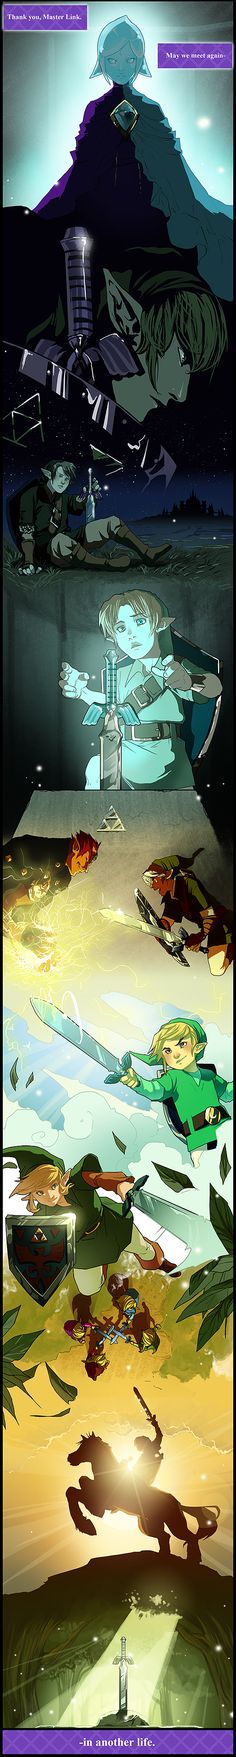 """""""Thank you, Master Link. May we meet again in another life."""" - Fi (Spirit of the Master Sword) The Legend of Zelda; fan art"""